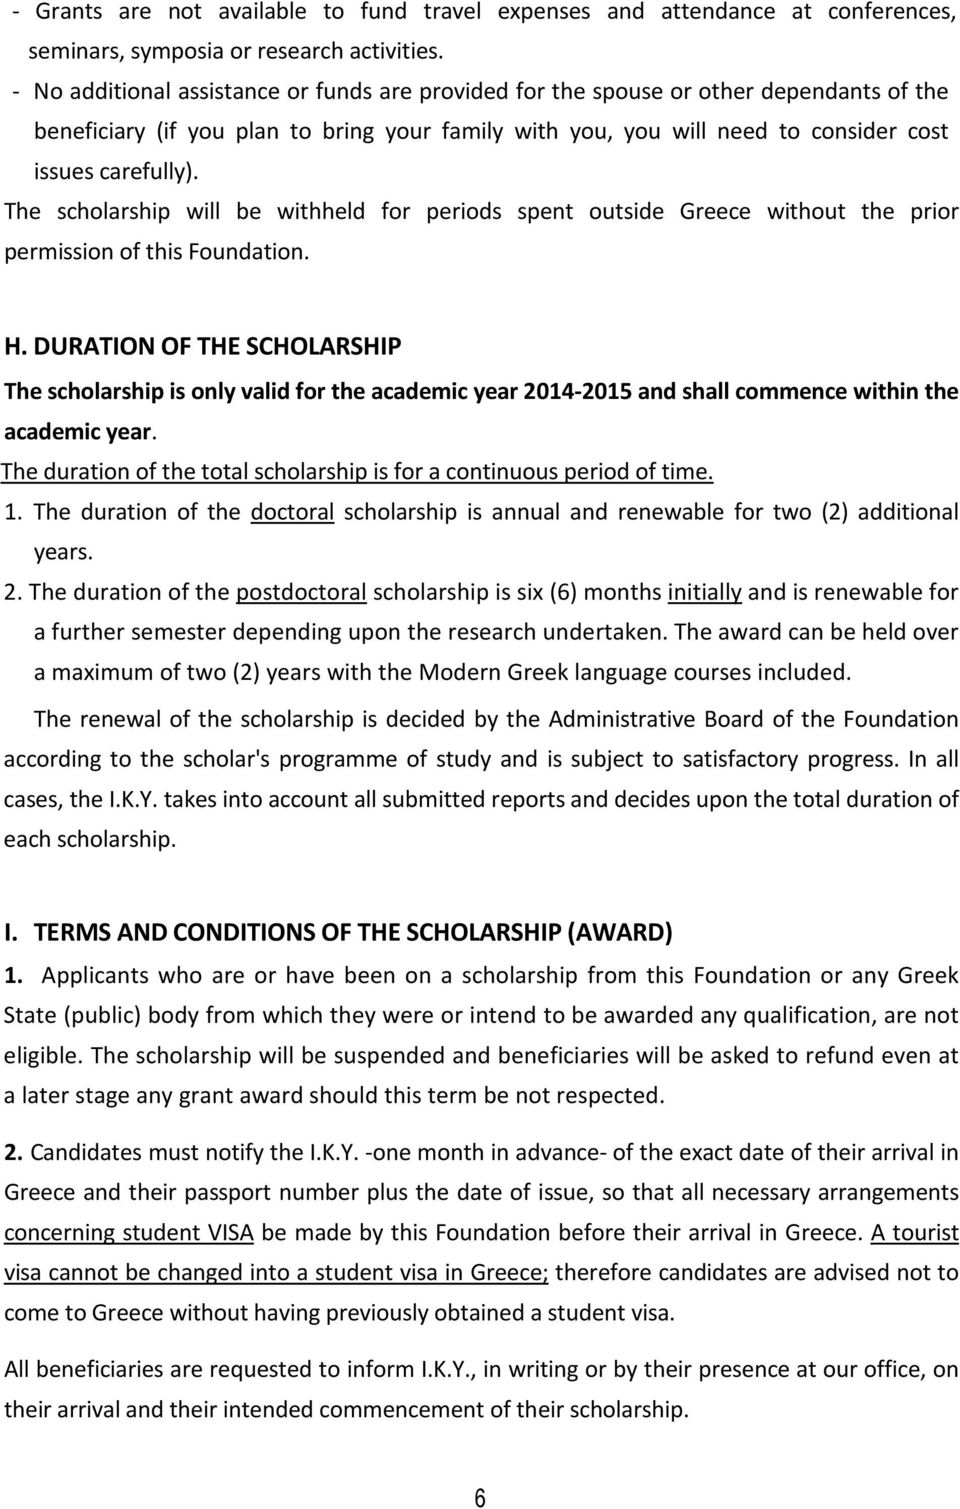 The scholarship will be withheld for periods spent outside Greece without the prior permission of this Foundation. H.